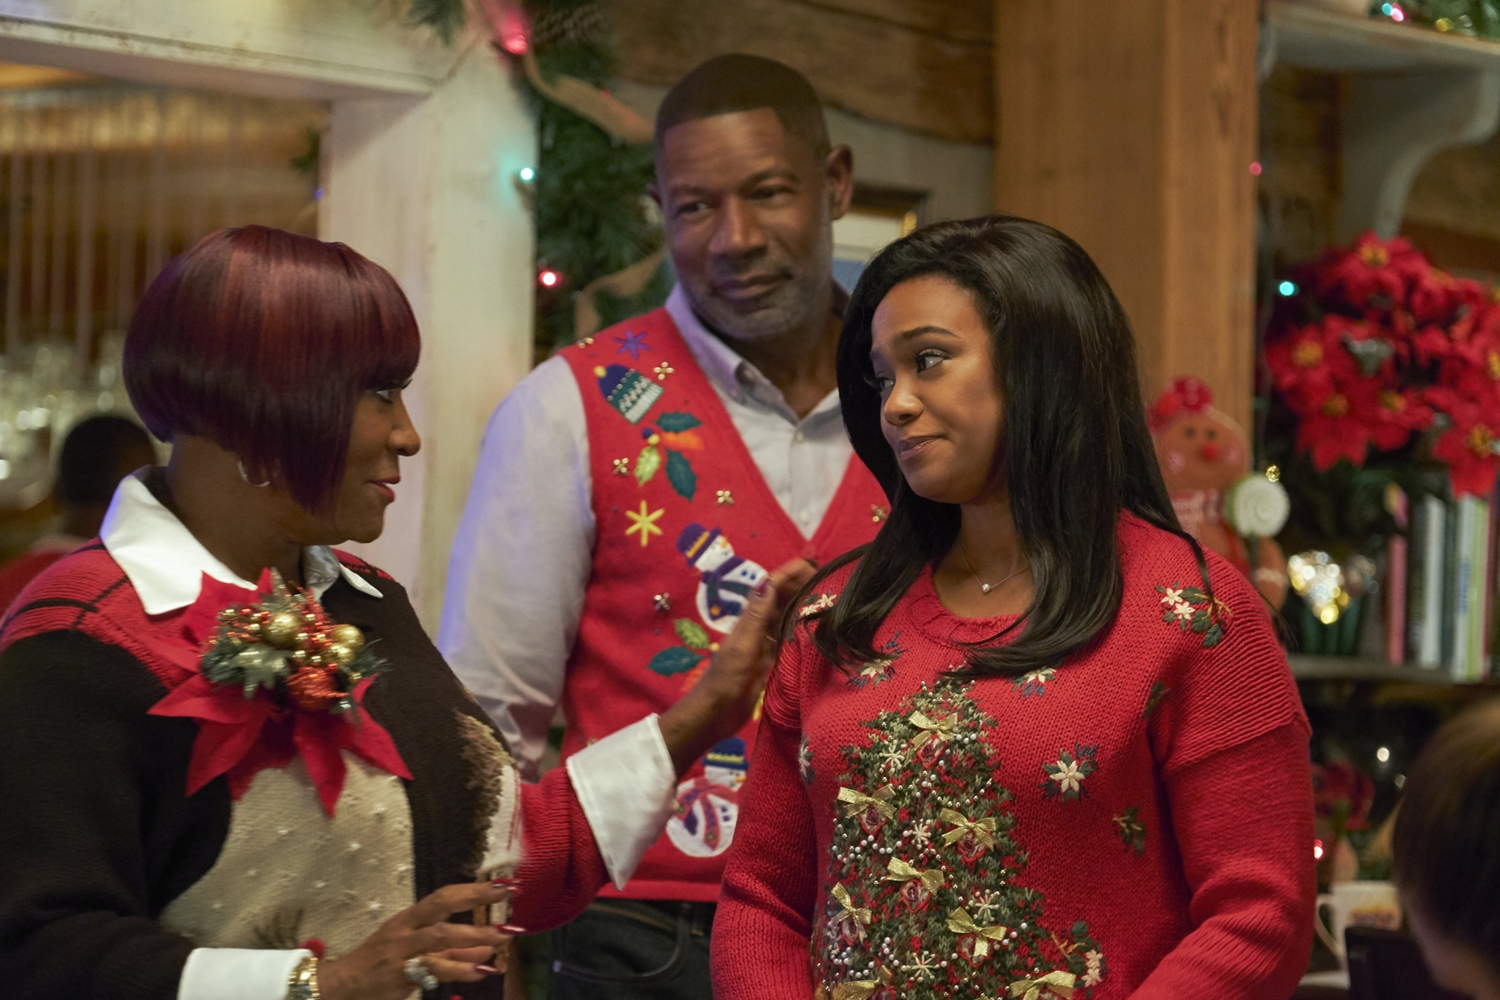 Tatyana Ali, Dennis Haysbert, and Patti LaBelle in Christmas Everlasting (2018)